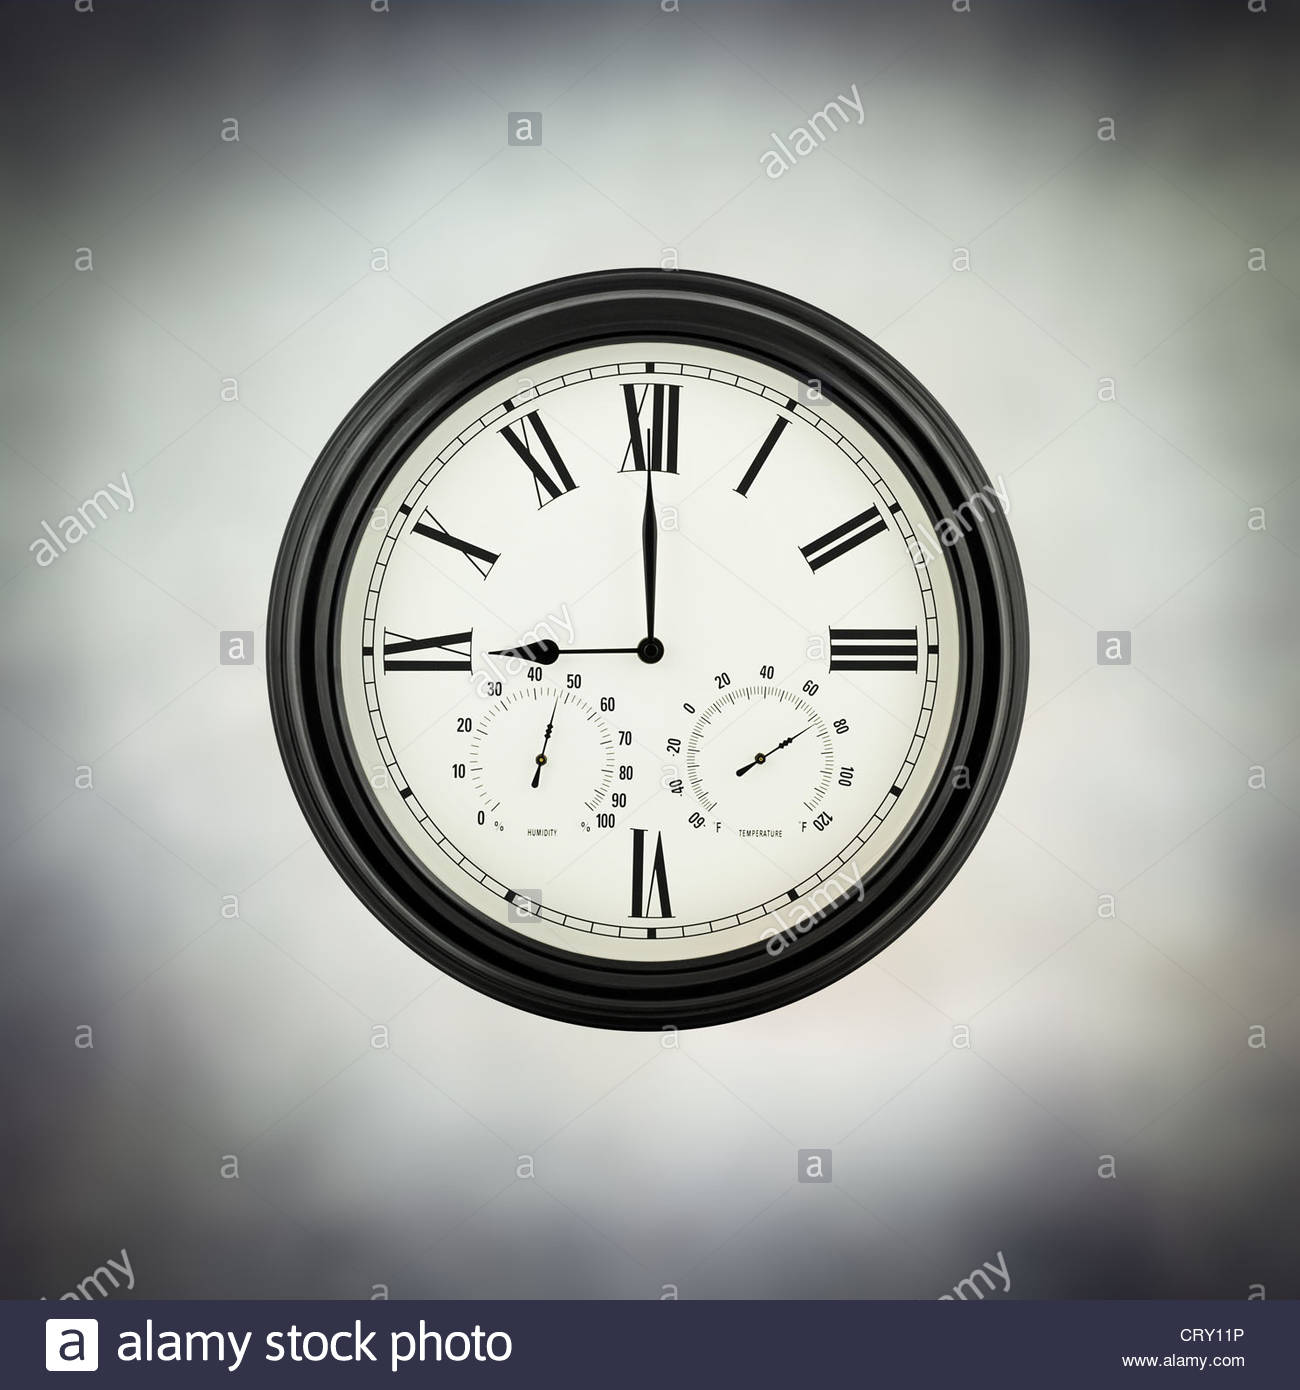 nine oclock - Stock Image